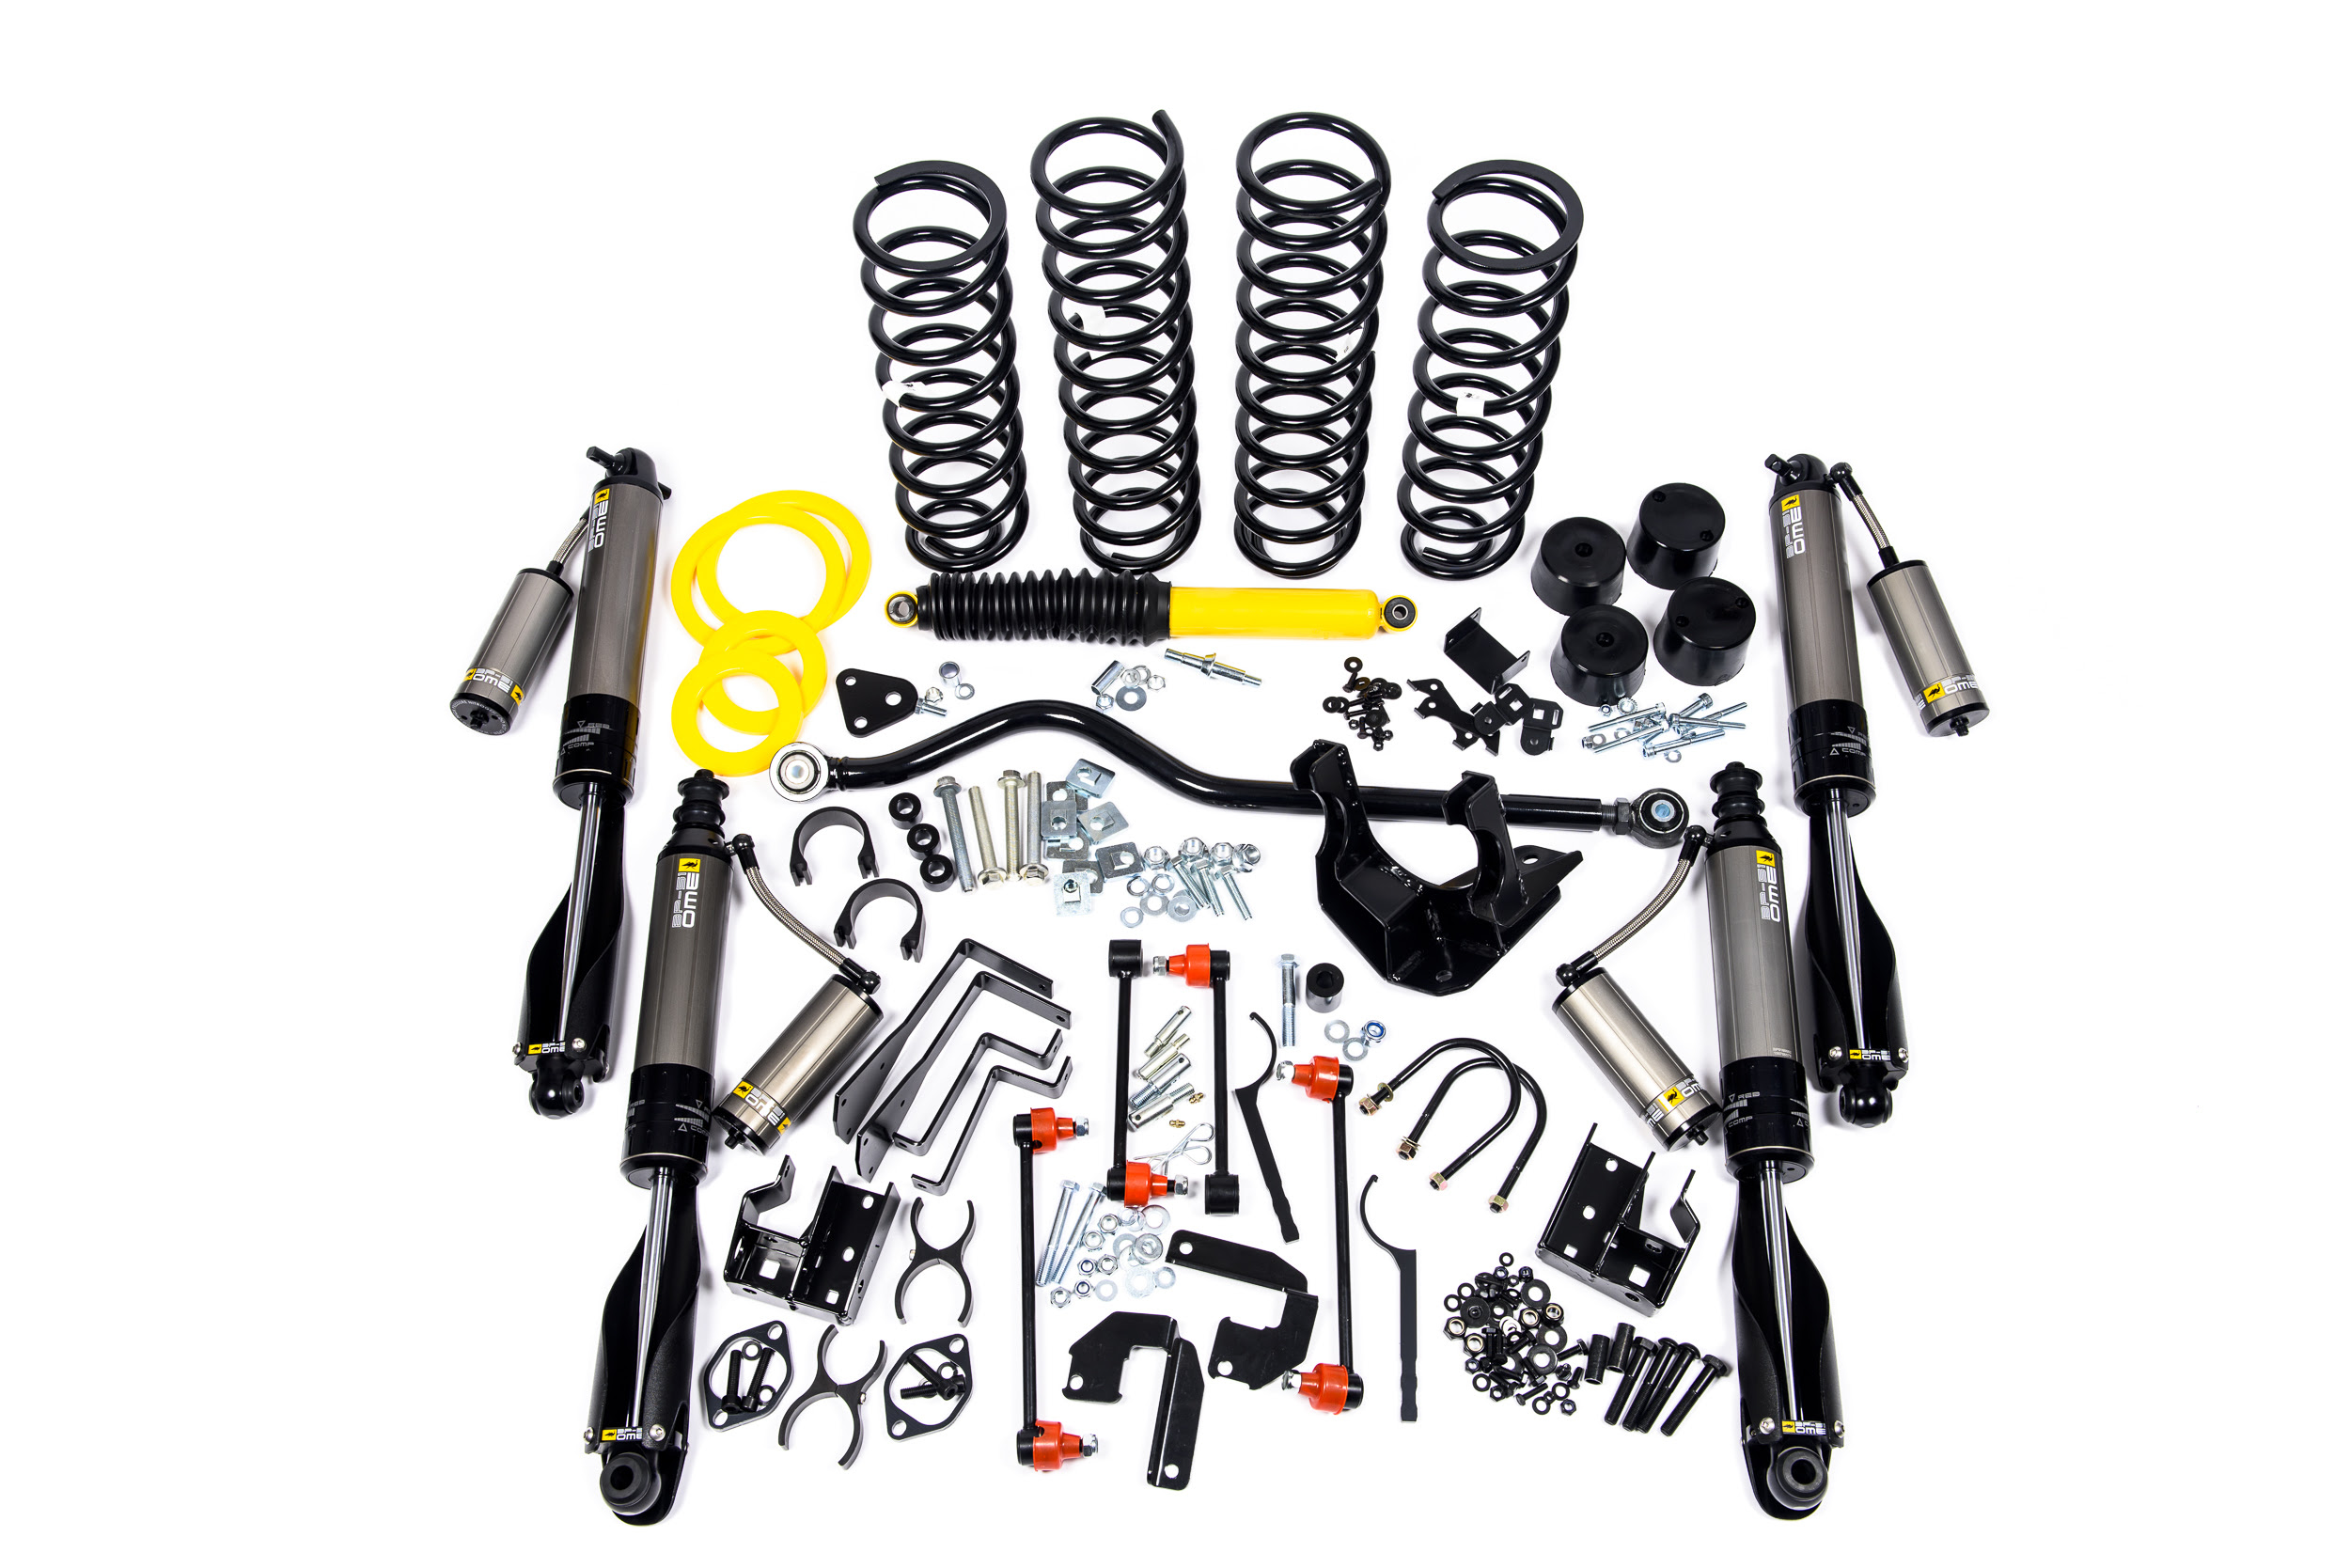 Jeep Wrangler Jk 4 Bp 51 Suspension Kit Rockcrawler